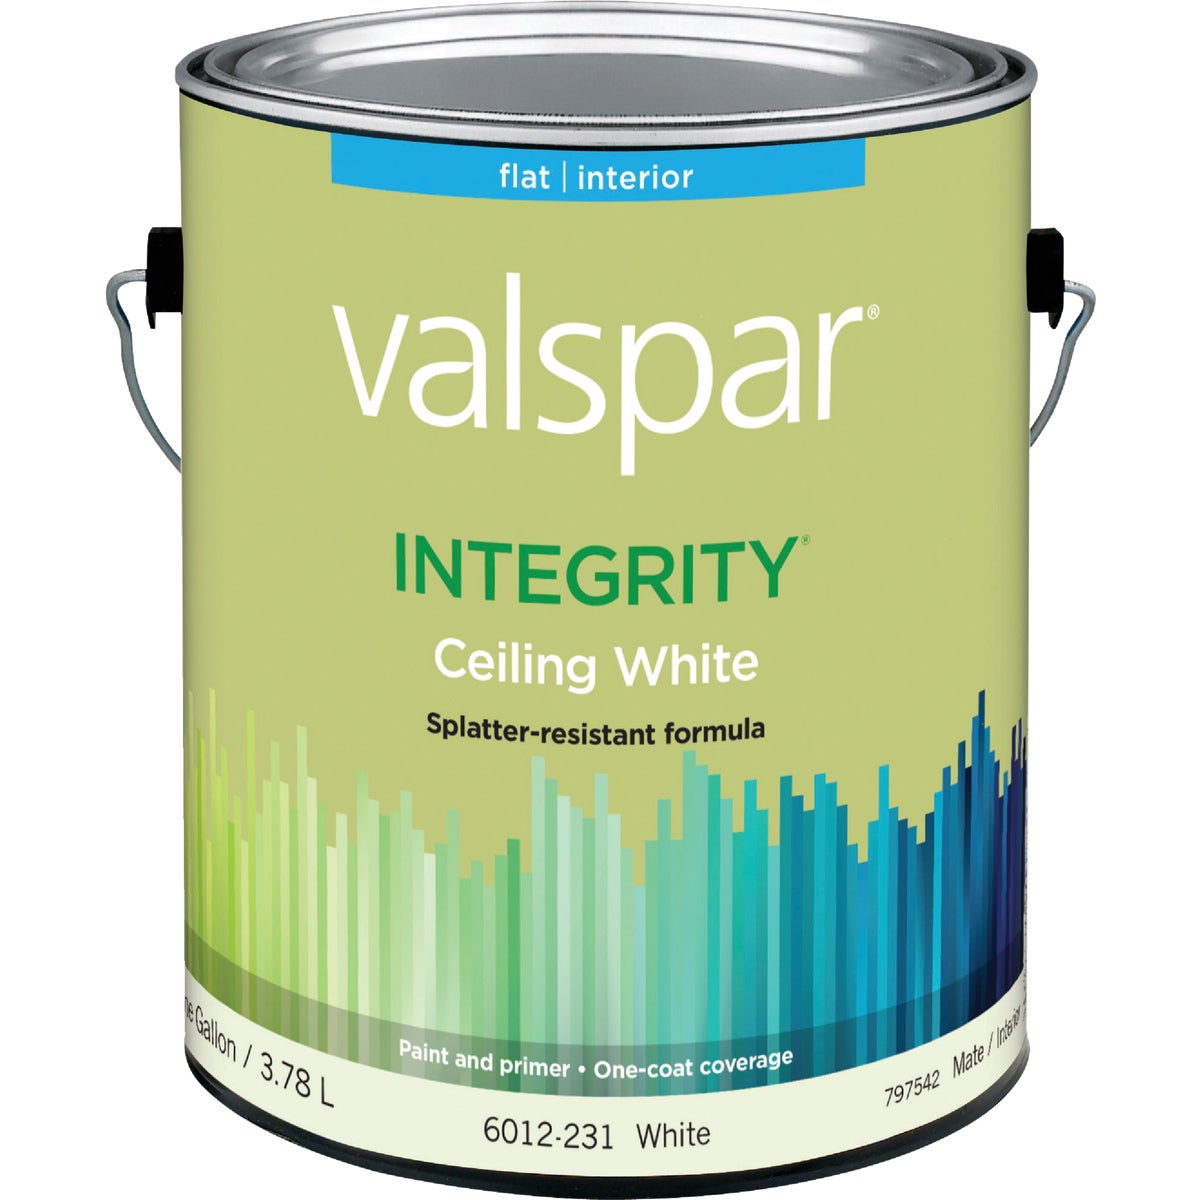 INT WHITE CEILING PAINT - 004.6012231.007 by Valspar Corp